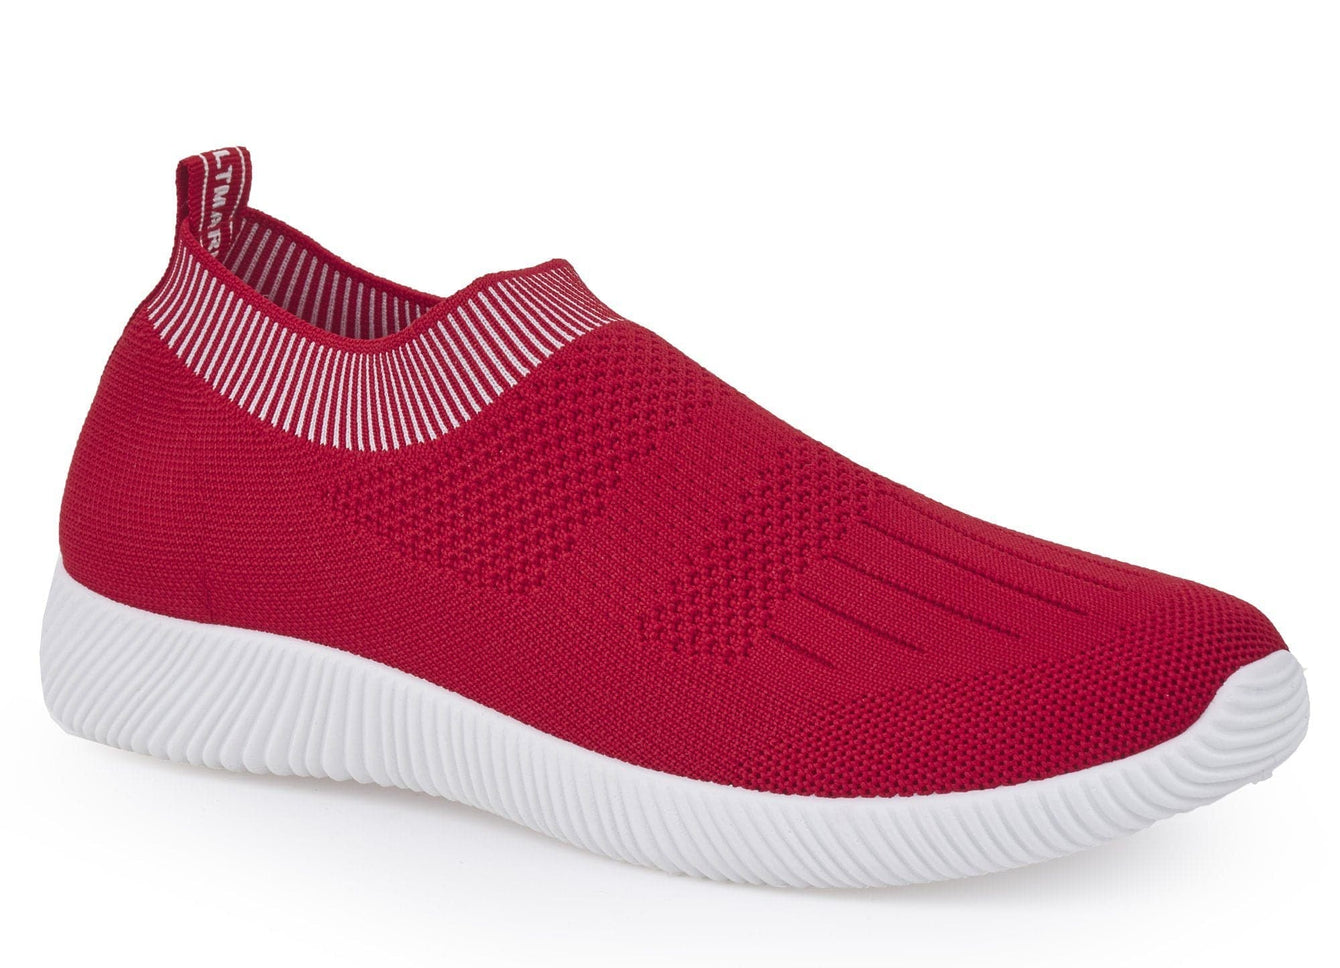 Shaughna Slip On Knitted Trainer in Red Trainers Miss Diva